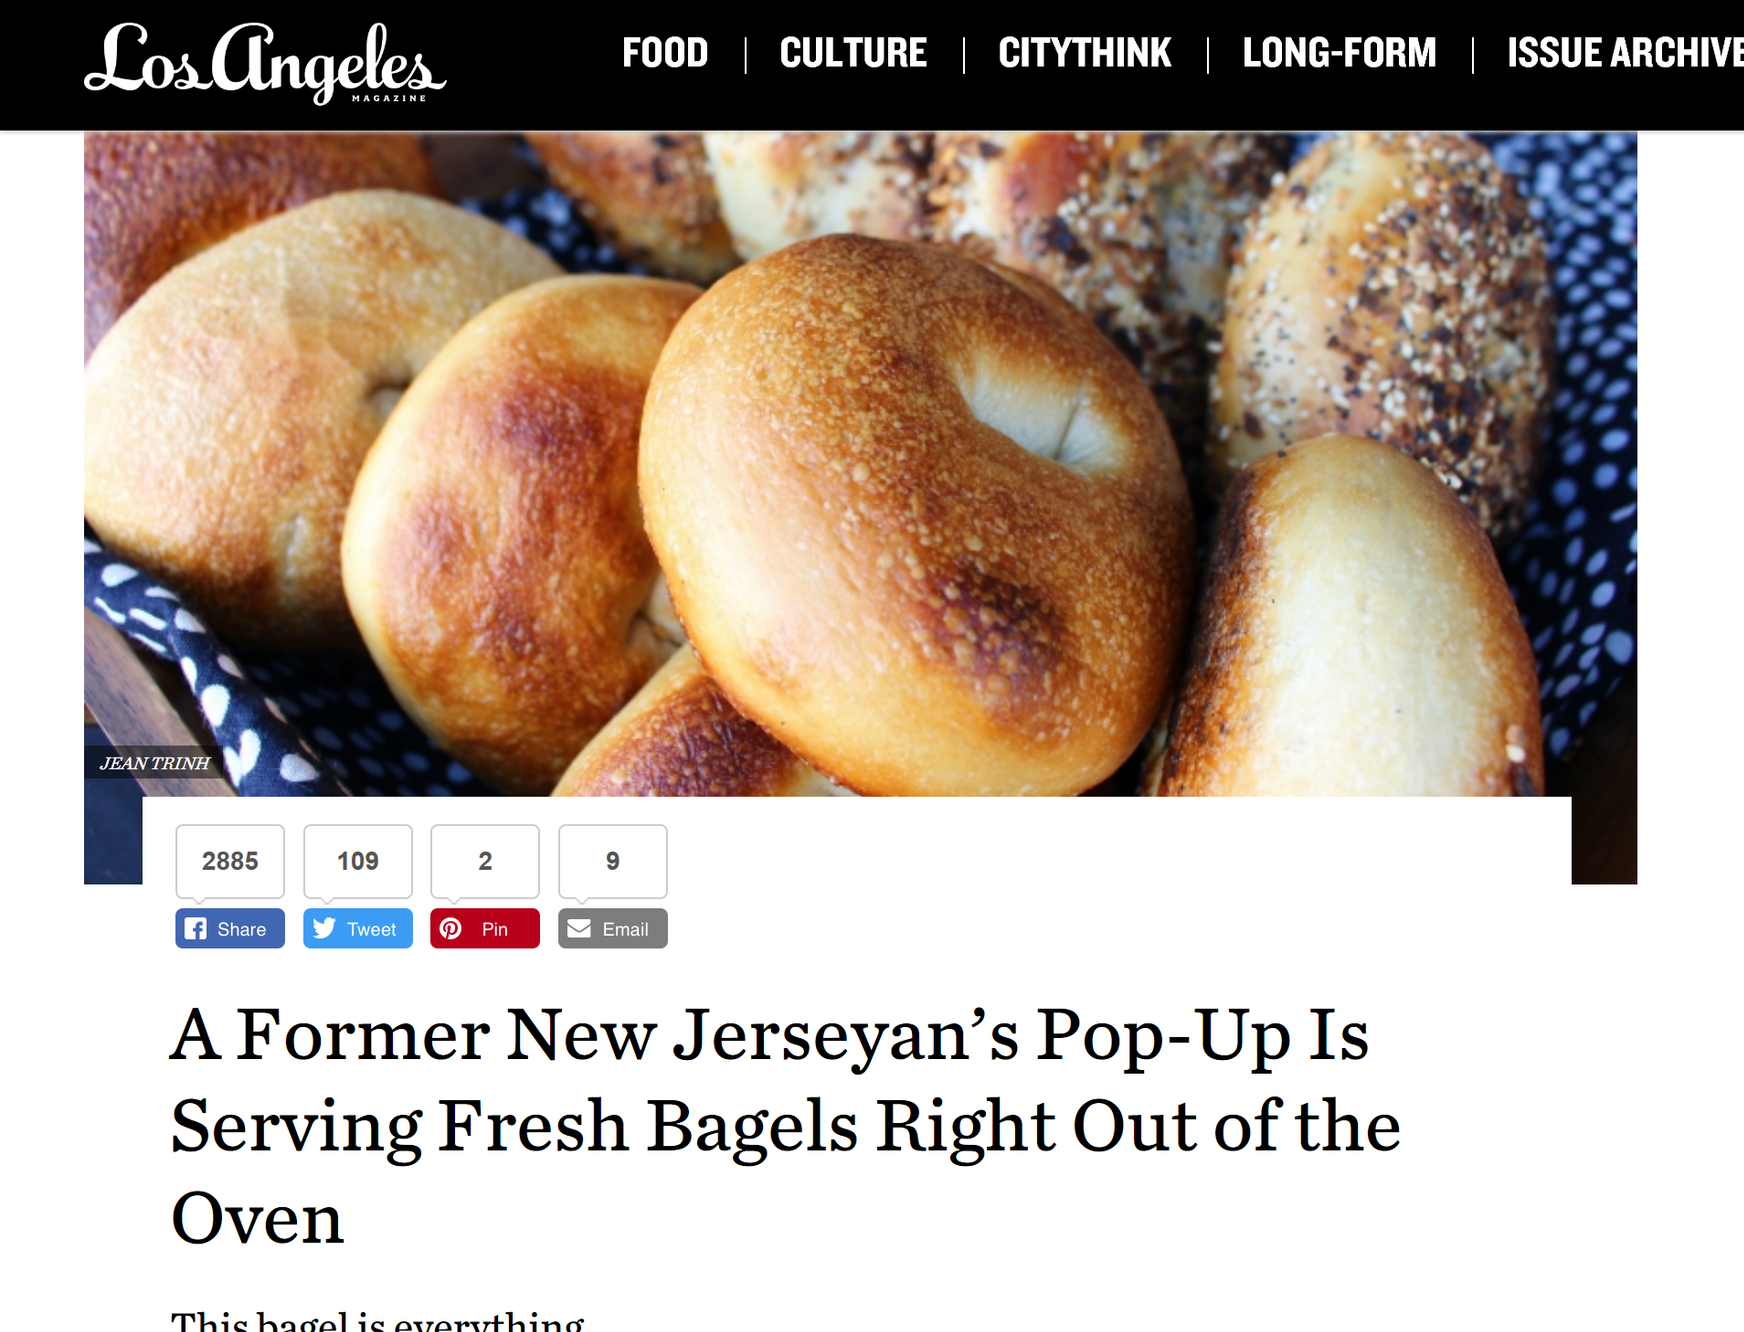 """""""Sure, we've all had our bagels toasted before, but in L.A., it's not often that we're able to perfectly time ordering and getting a warm, freshly baked one right out of the oven. That's where   Pop's Bagels   comes in."""""""